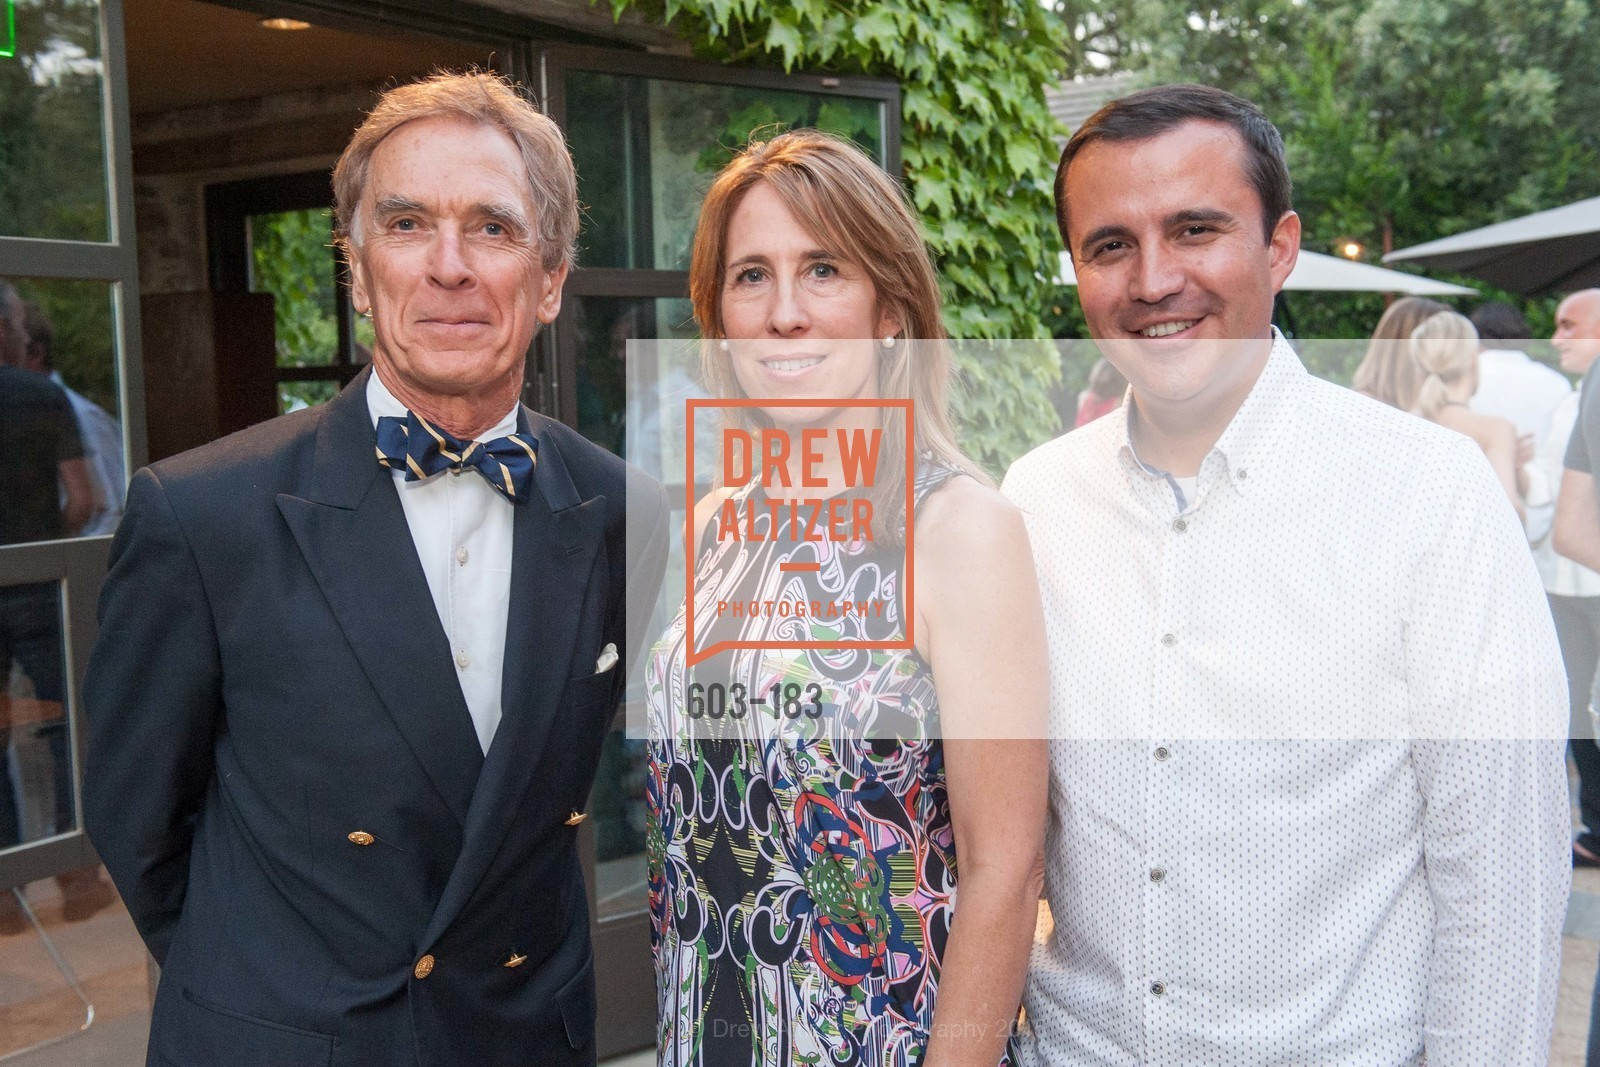 Paul Griffin, Allison Pobrislo, Jorge Jaramillo, Oyster Cup Polo Tournament Preview Party Hosted by Cerro Pampa Polo Club and Stick & Ball, Ma(i)sonry. 6711 Washington St, June 25th, 2015